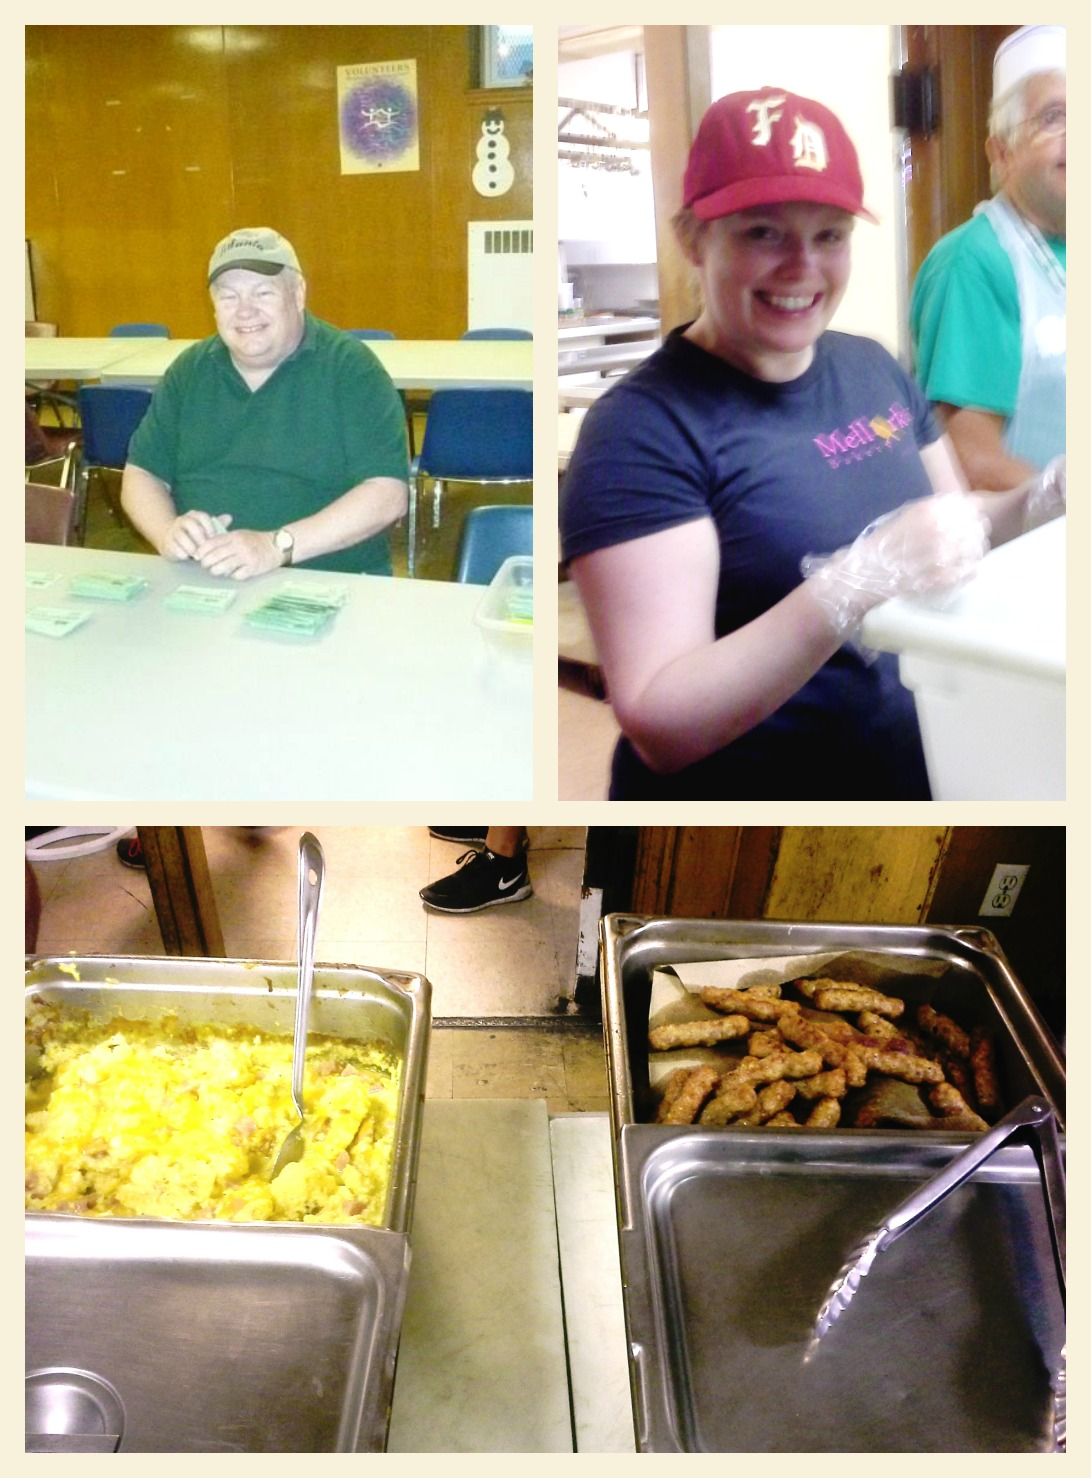 Top left: Bob Heindl organizes tickets for the Gathering's Breakfast Program; Top right: Sam hands out silverware in the serving line; Bottom: 7/22 Sharon's birthday breakfast sausage and eggs